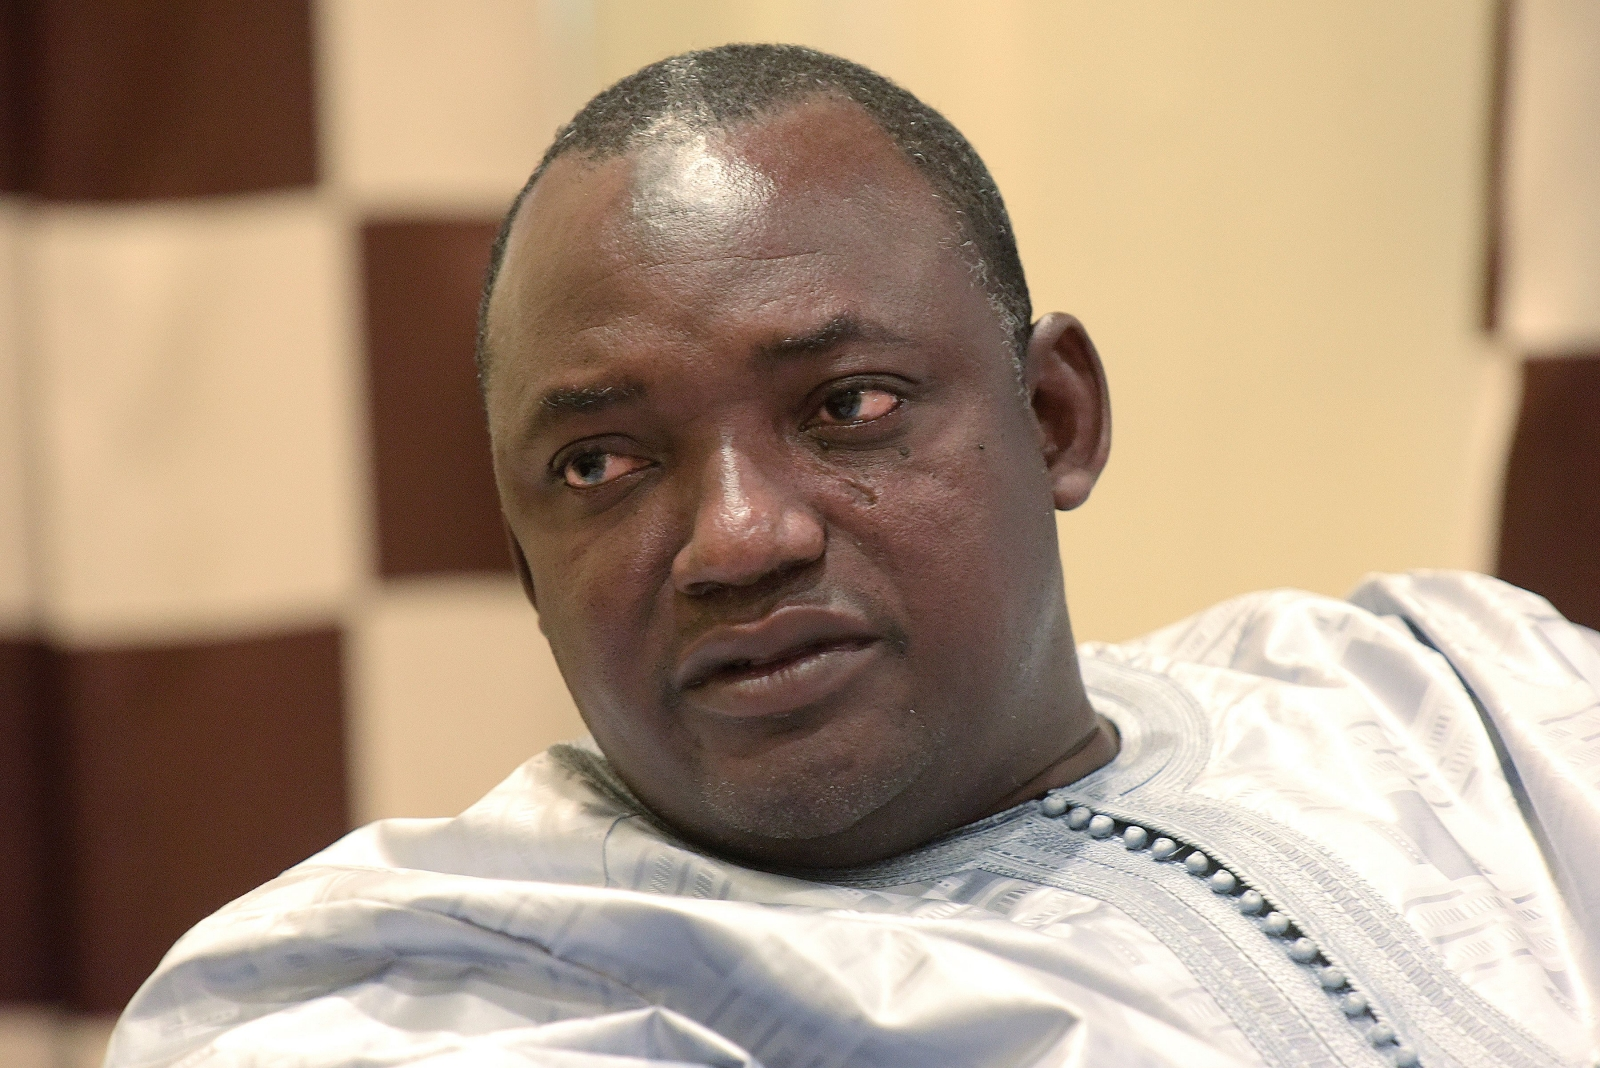 No official reason has been given for the dismissals, but many are speculating that it is strongly linked to their appointment by President Barrow's predecessor, Yahya Jammeh. Image courtesy: IBTimes UK